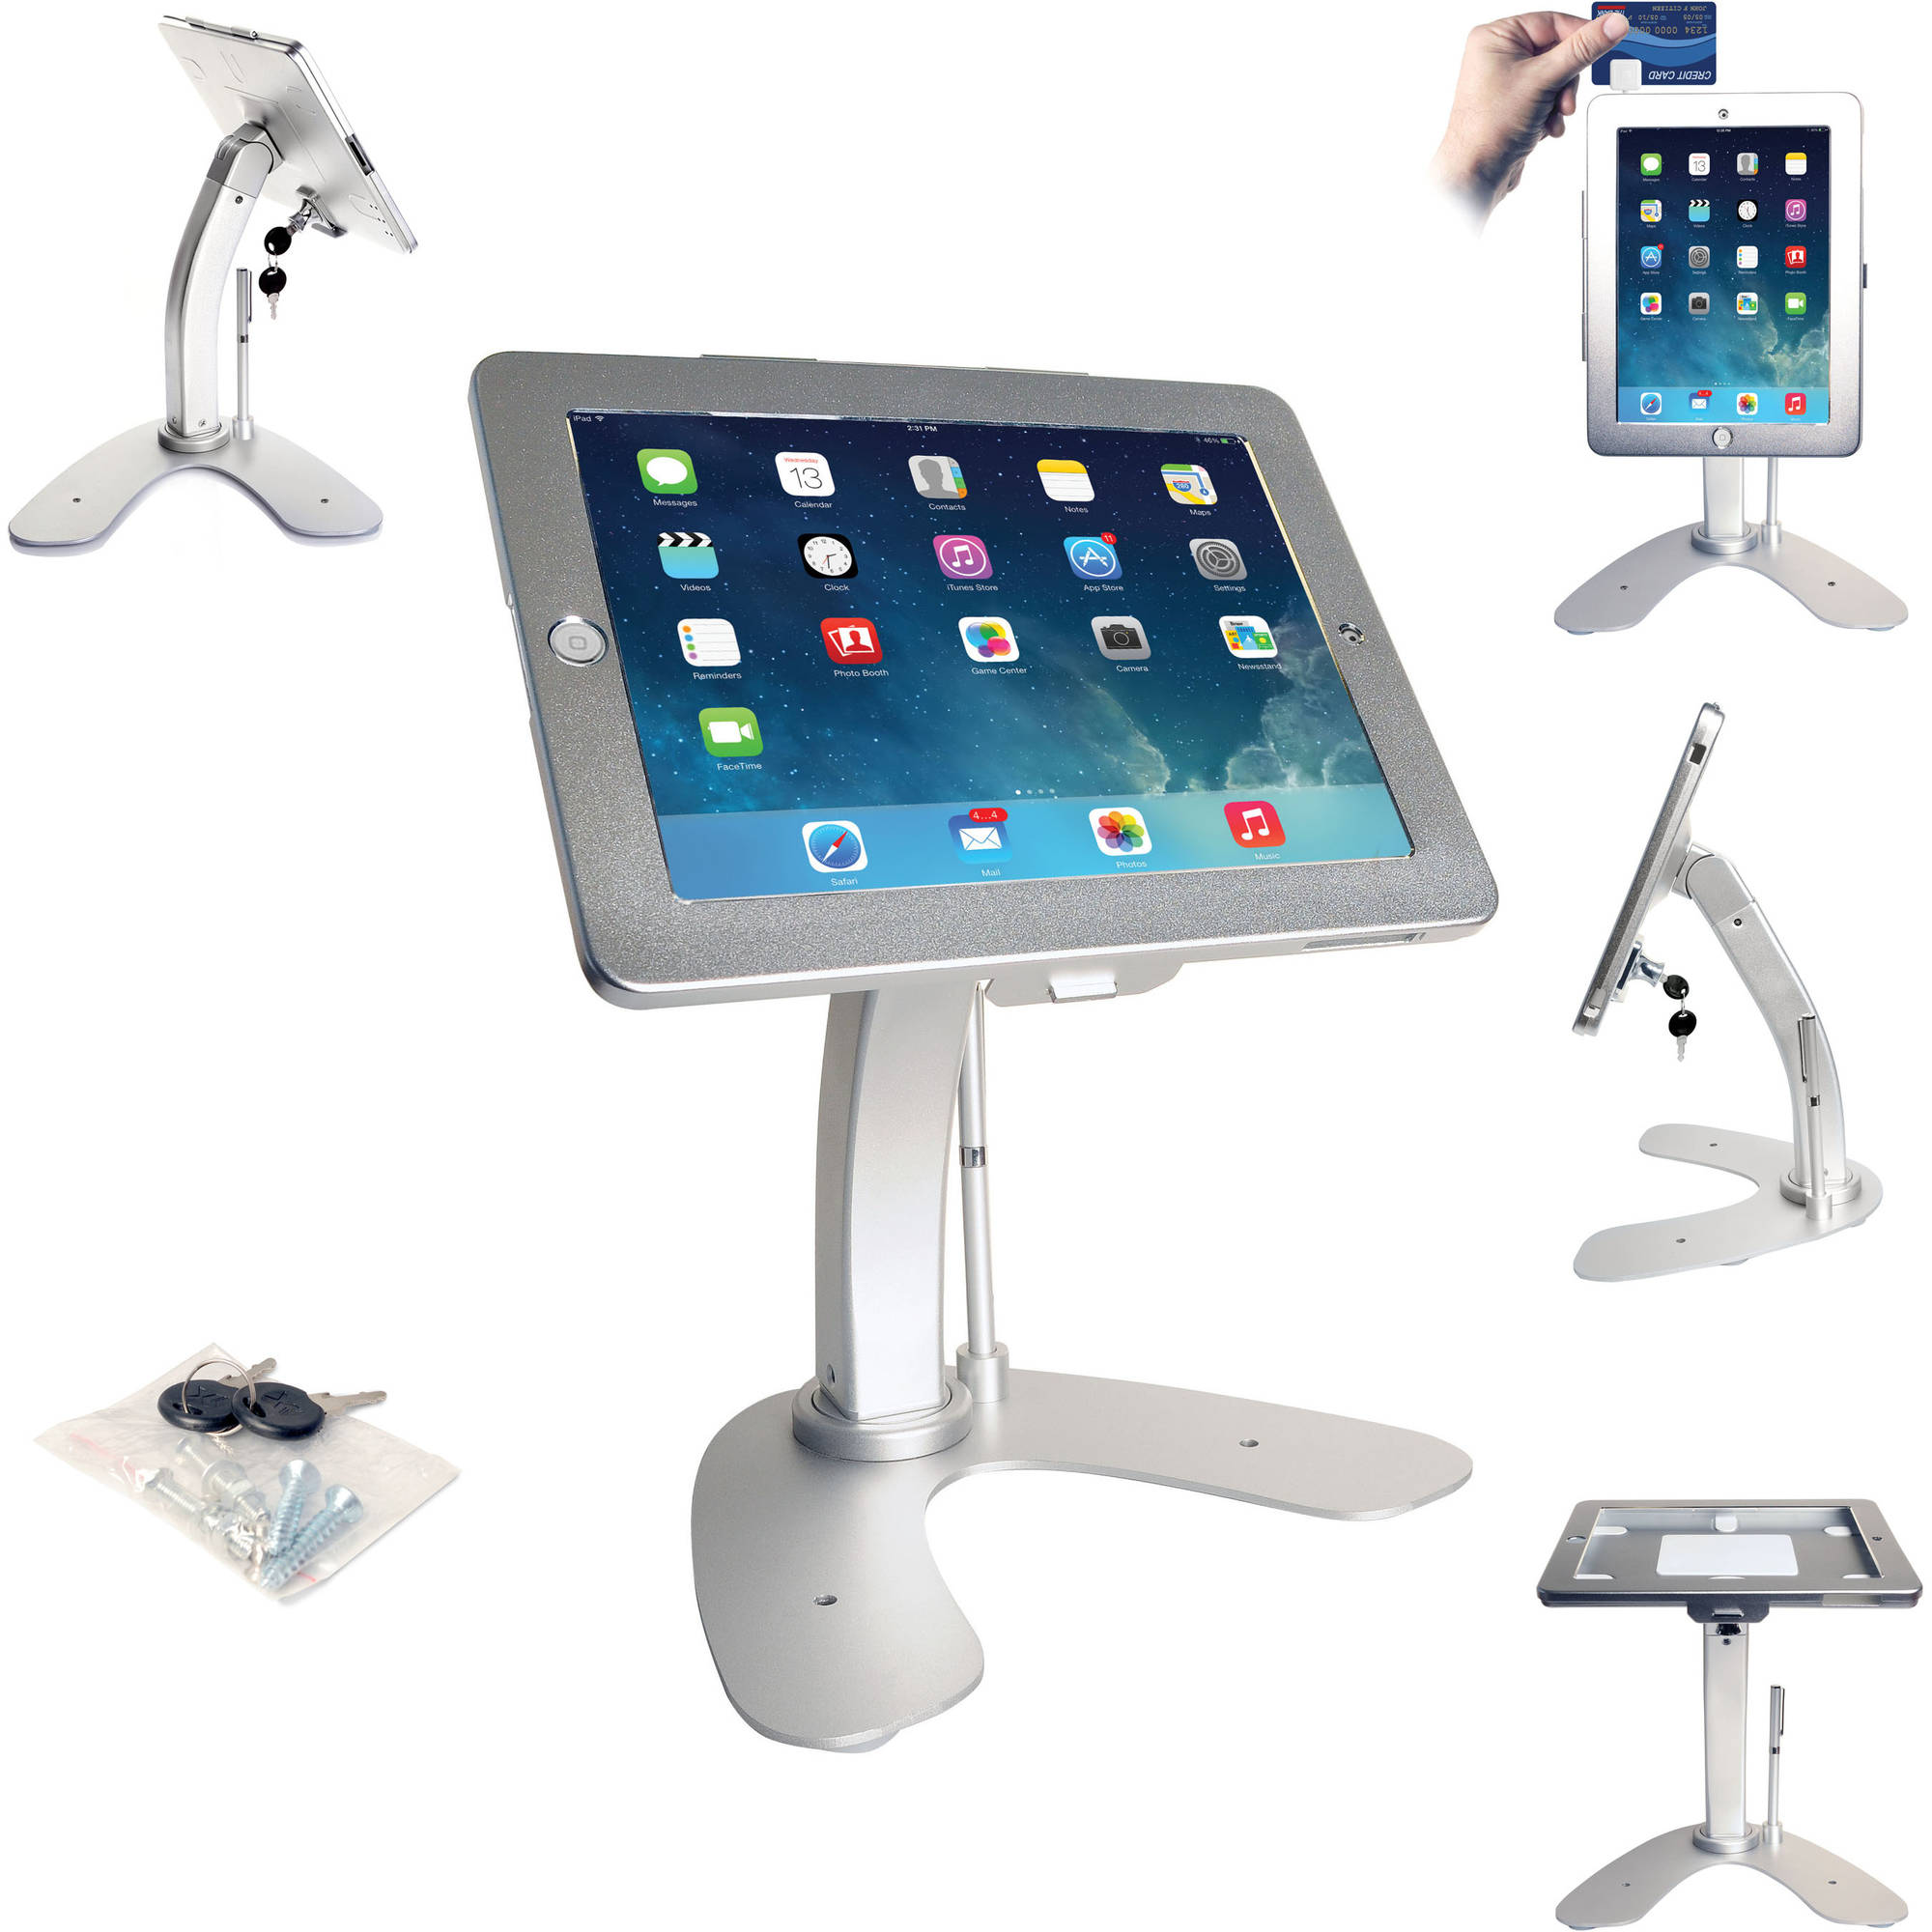 CTA PAD-ASK Apple iPad/iPad Air/iPad Air 2 Antitheft Security Kiosk Stand